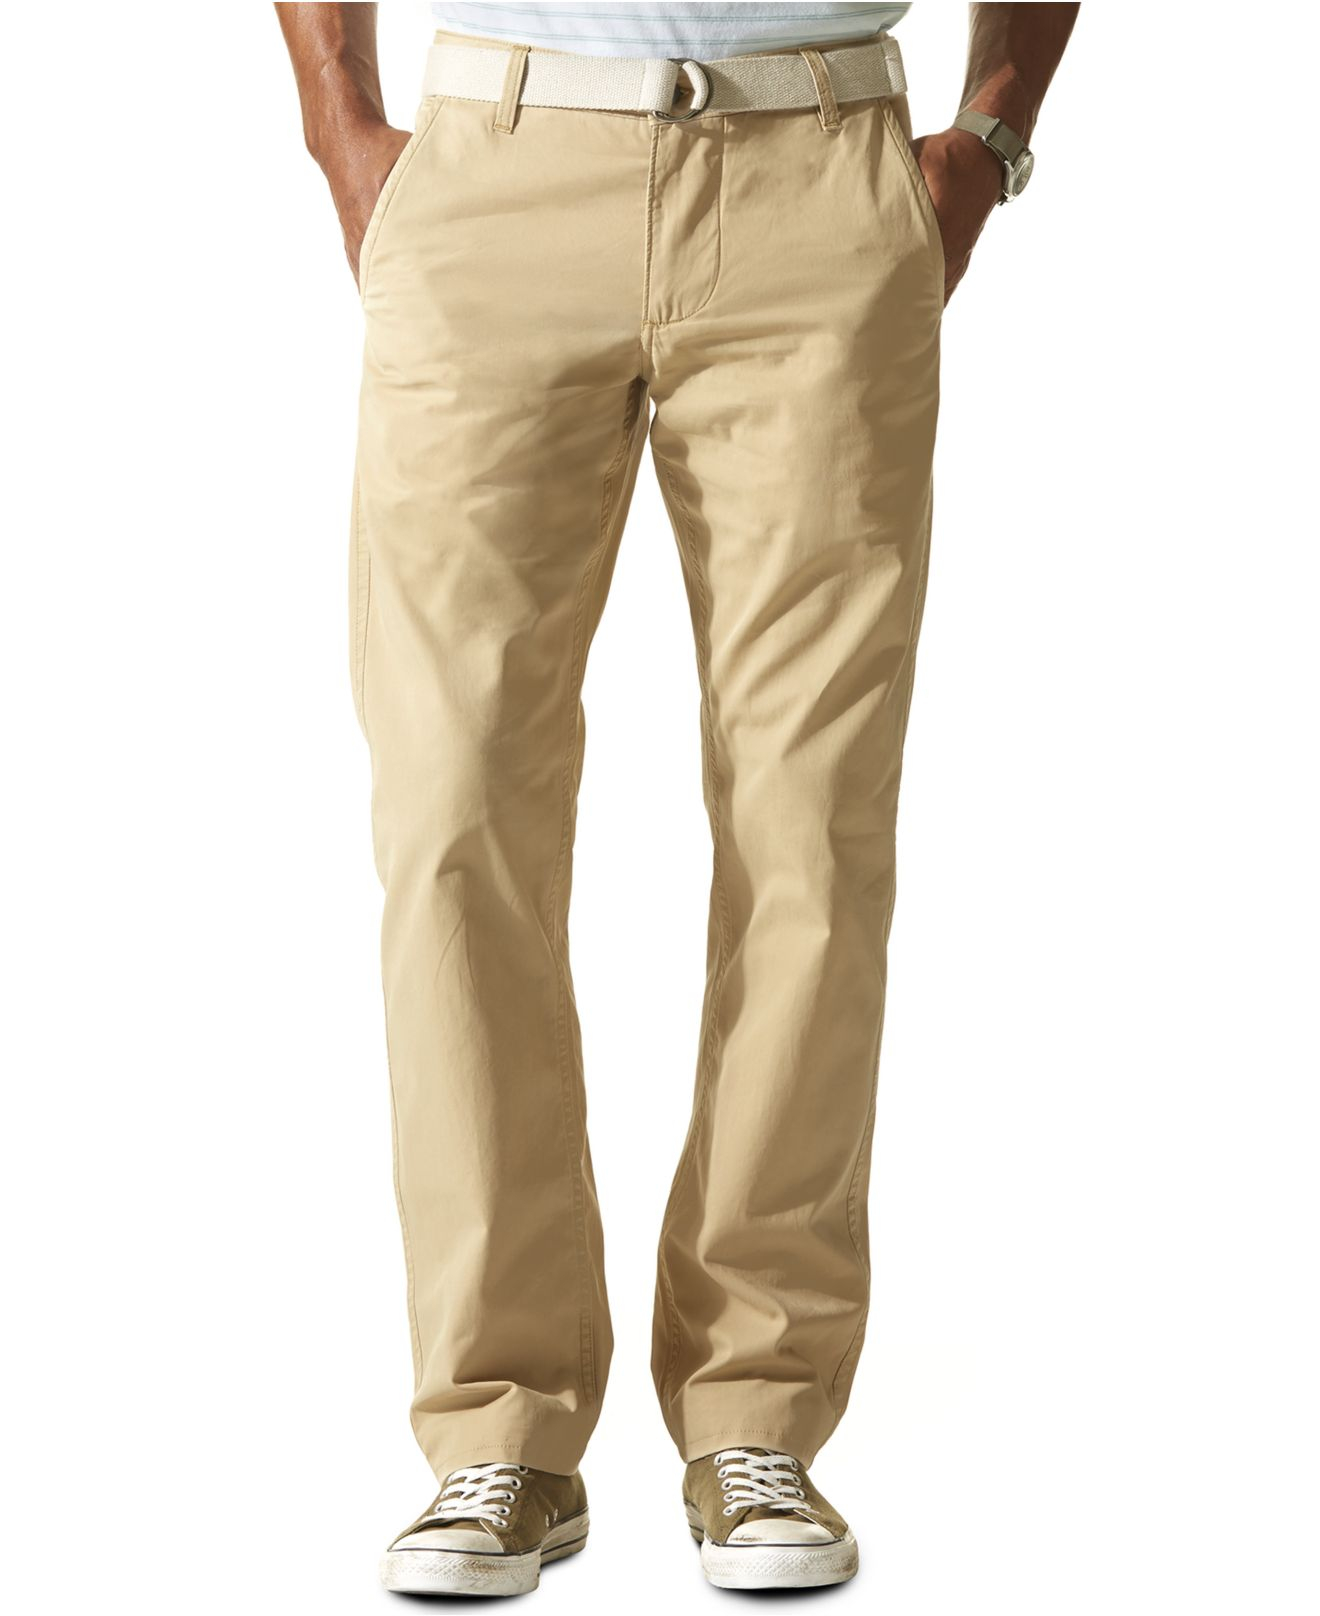 Shop online for men's chino pants at shopnow-ahoqsxpv.ga Browse straight-leg, slim-fit & tapered-leg chinos & more in a variety of styles. Free shipping & returns.